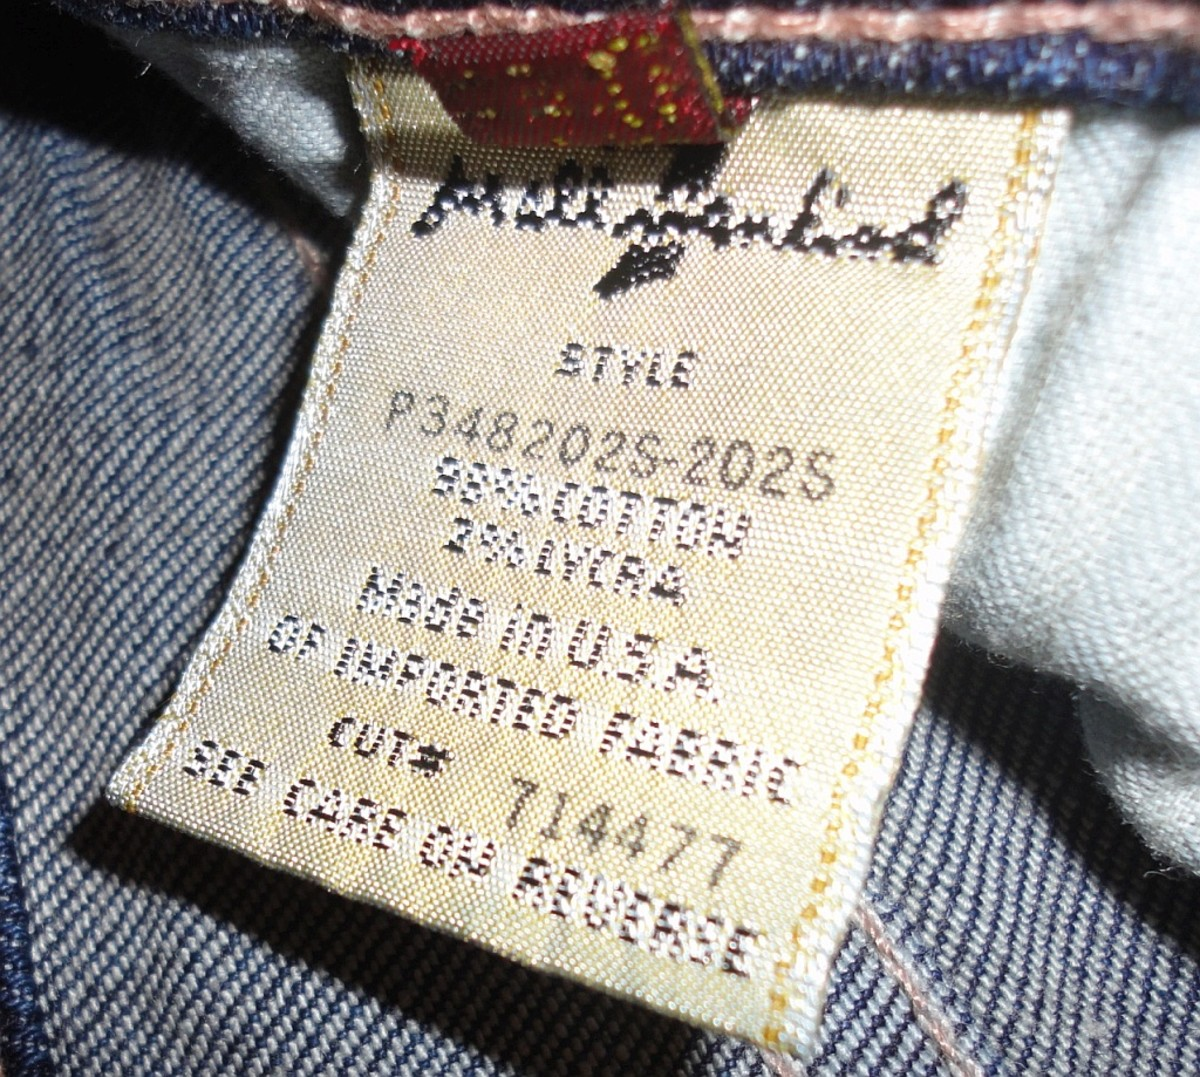 Looking at a genuine tag, one will see the style code [P348 ...] & cut # [714477] have been screen printed directly onto the tag. A fake pair of jeans would be stitched on, not printed.